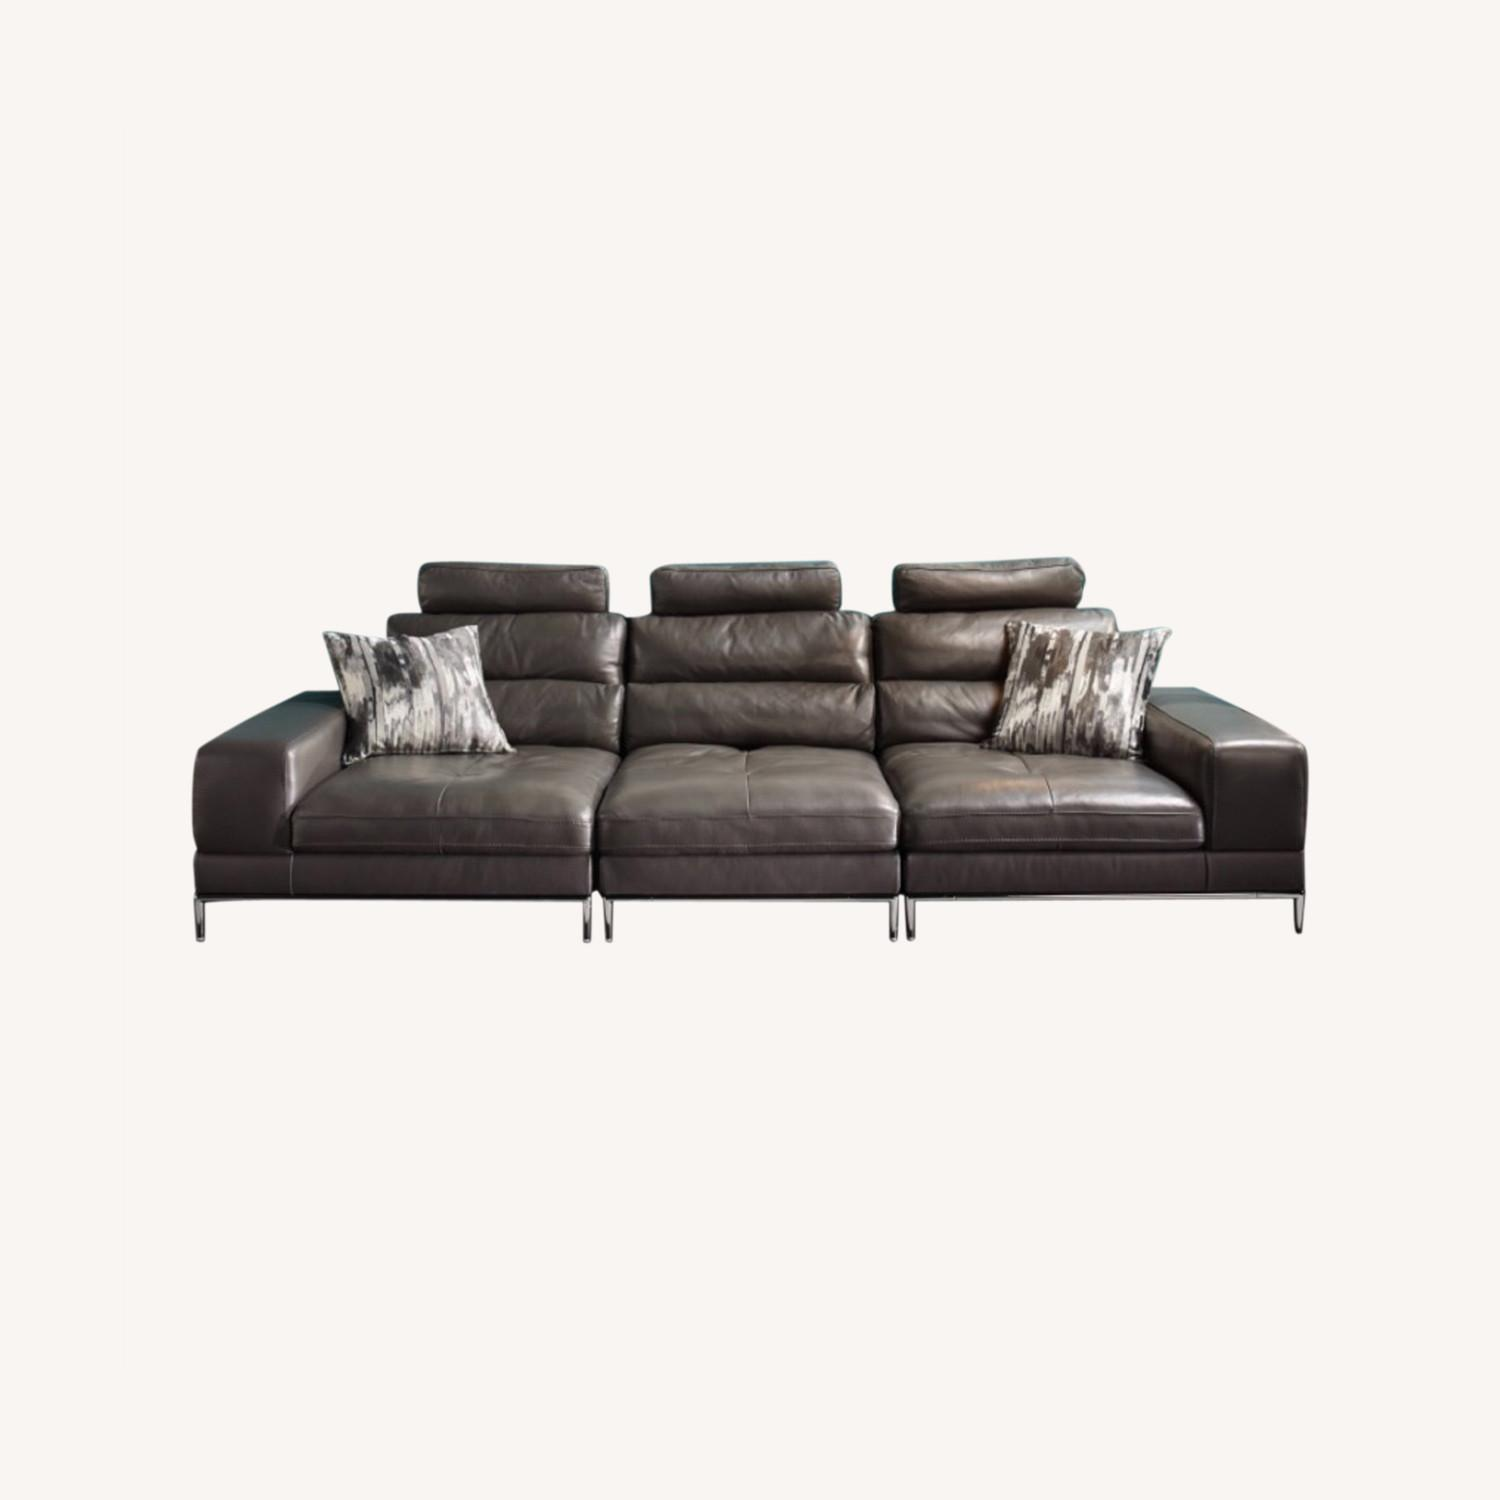 Z Gallerie Jude Leather Sofa - image-0